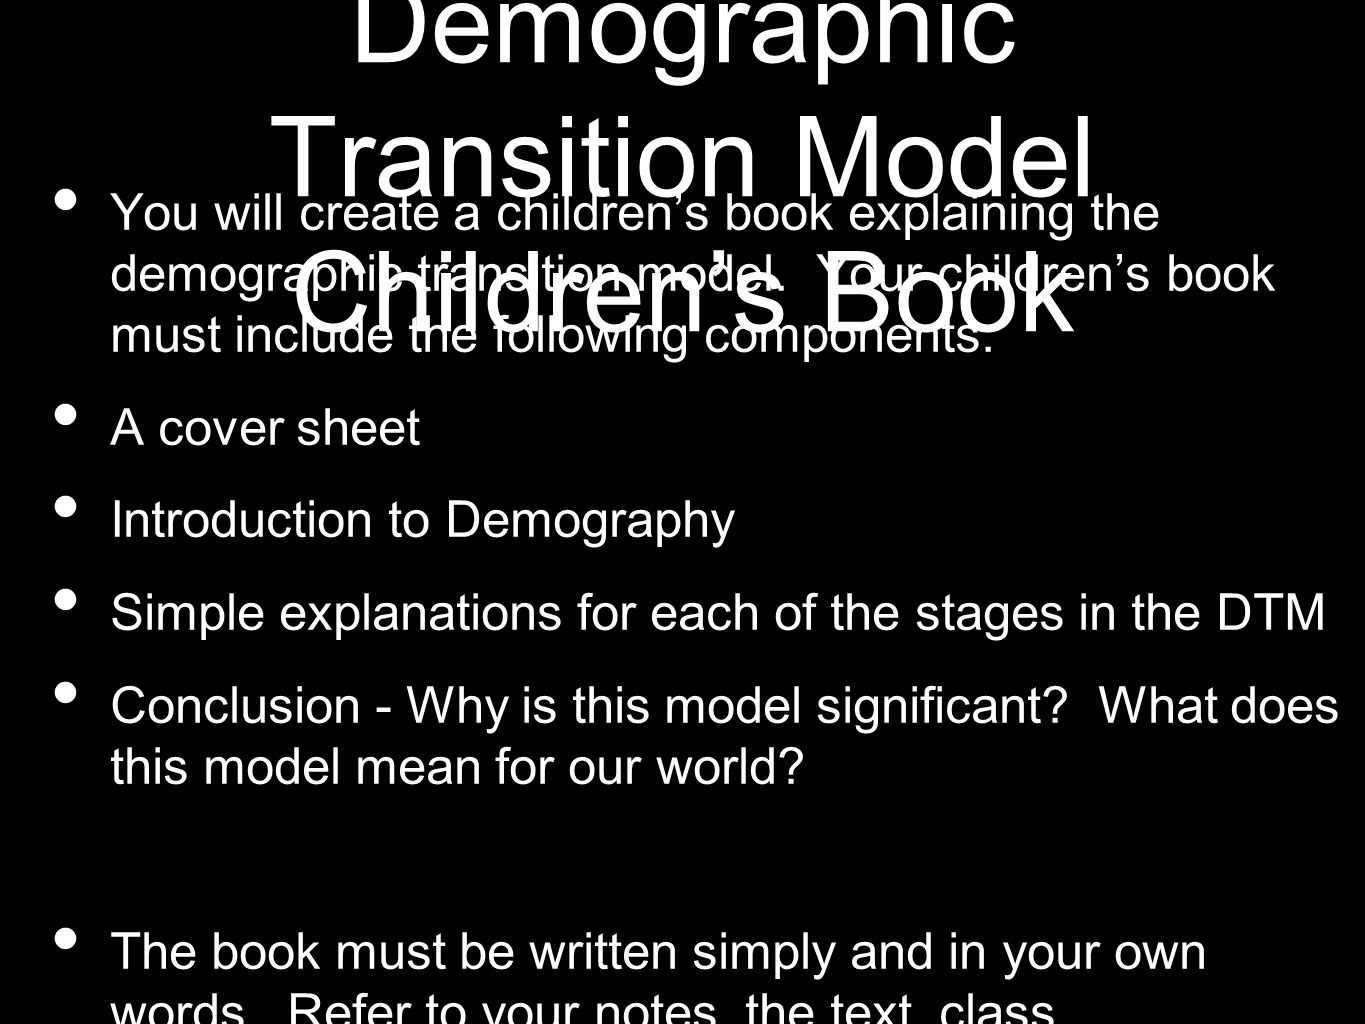 Demographic Transition Model Children's Book